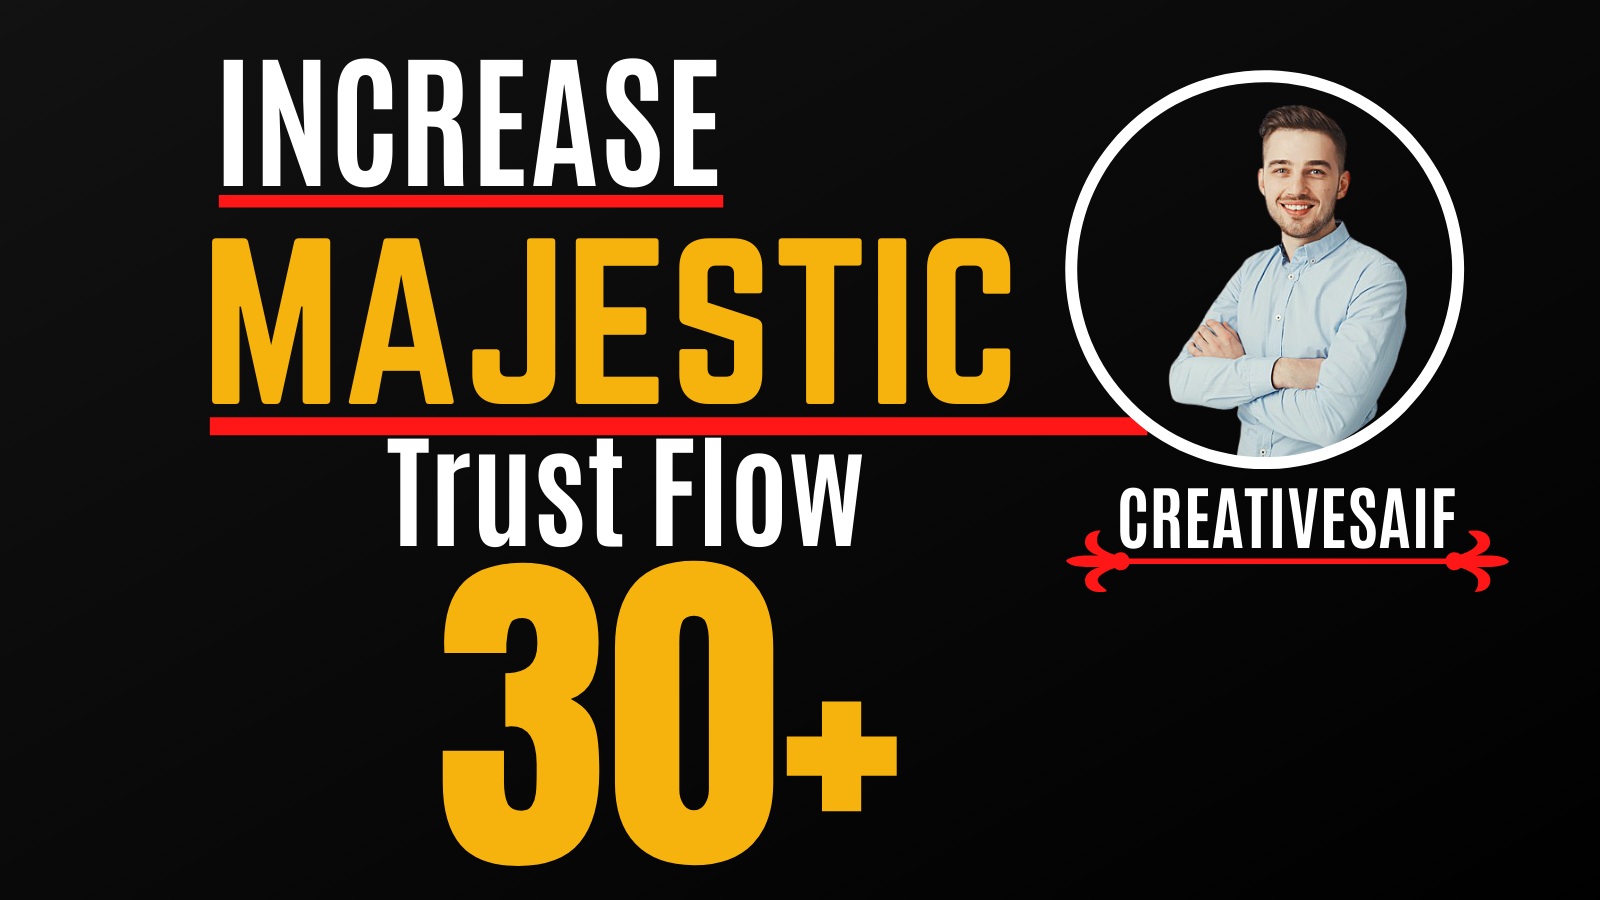 I will increase trust flow,  majestic tf 30plus guaranteed